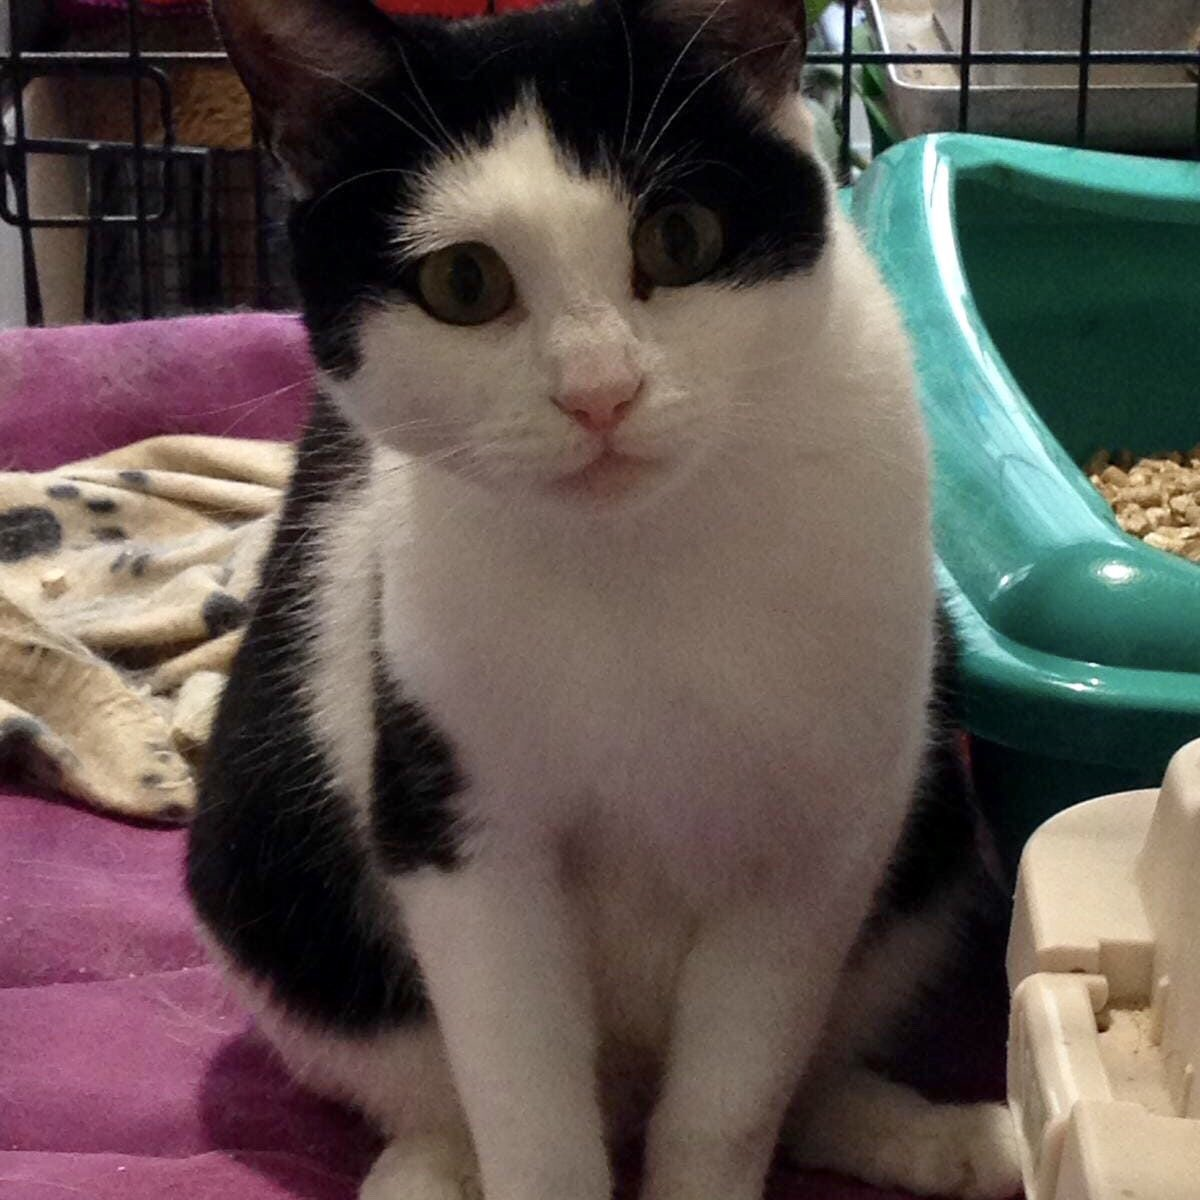 Could someone please adopt lovely Lindy this #WhiskersWednesday? She's been waiting too long for a home. Please #AdoptDontShop today! <br>http://pic.twitter.com/gDvI3UqEsb